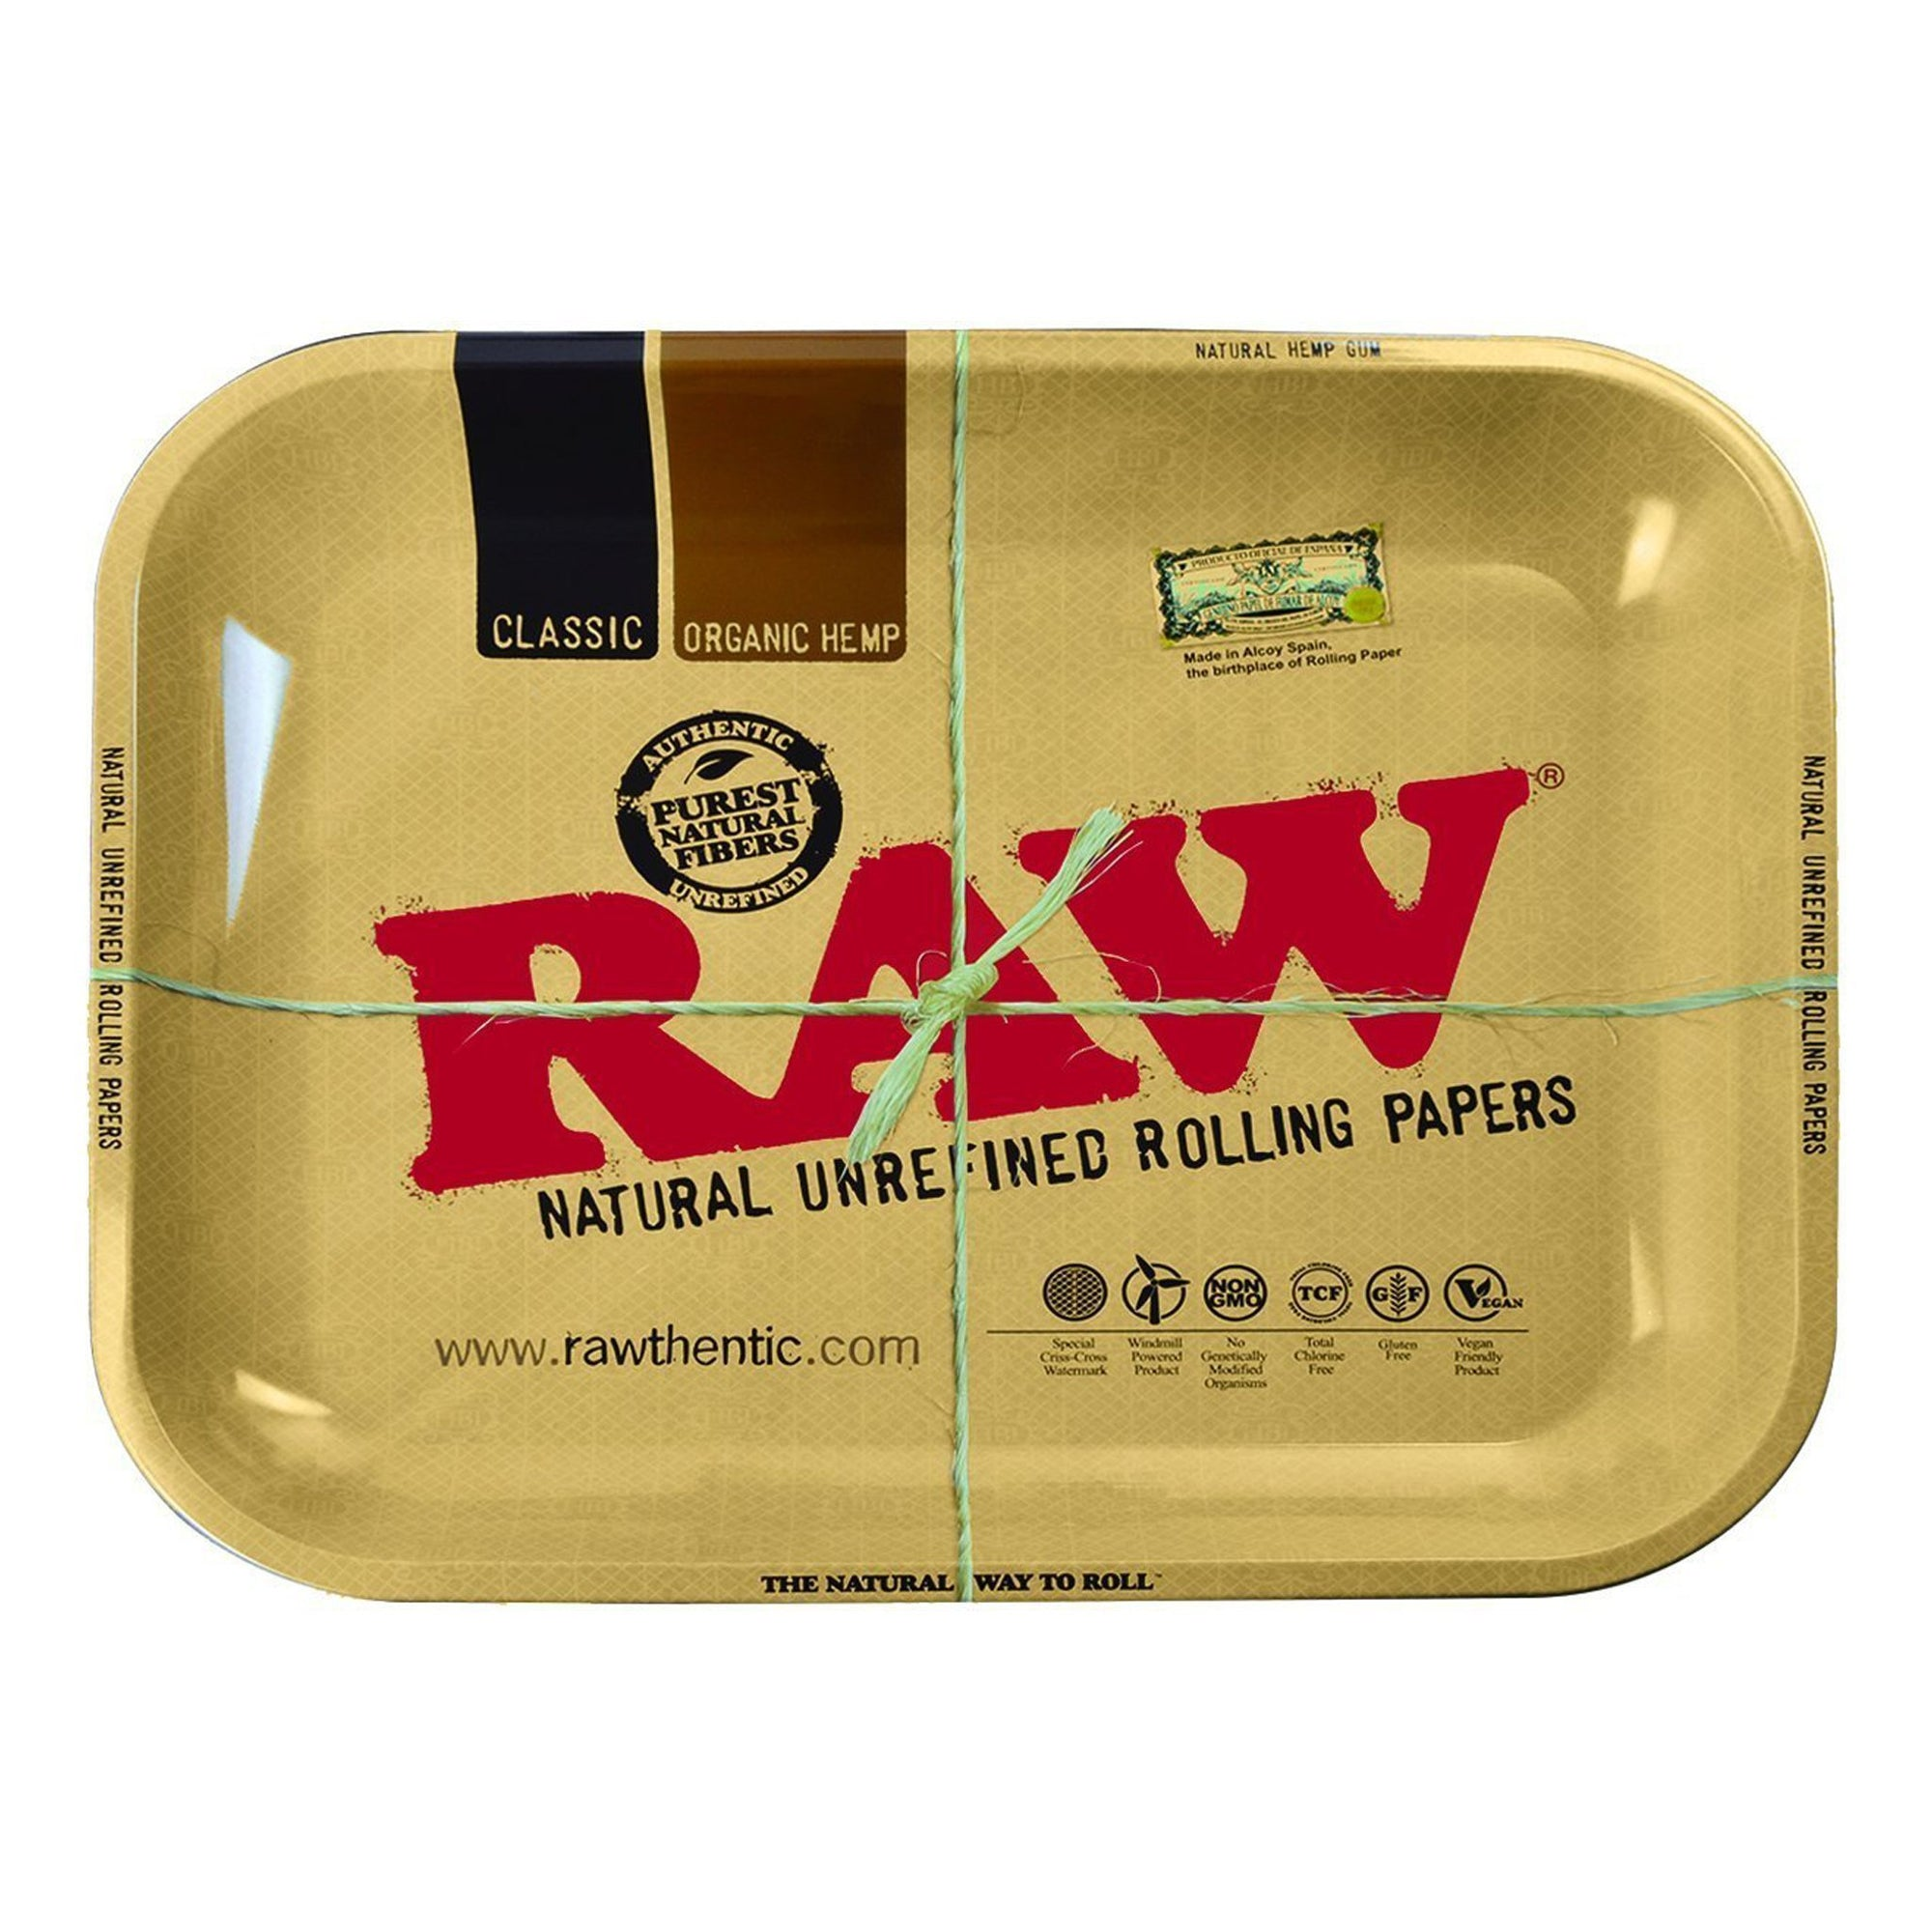 Full shot of huge XXL 20 inch light brown RAW metal rolling tray with huge RAW print in red colors